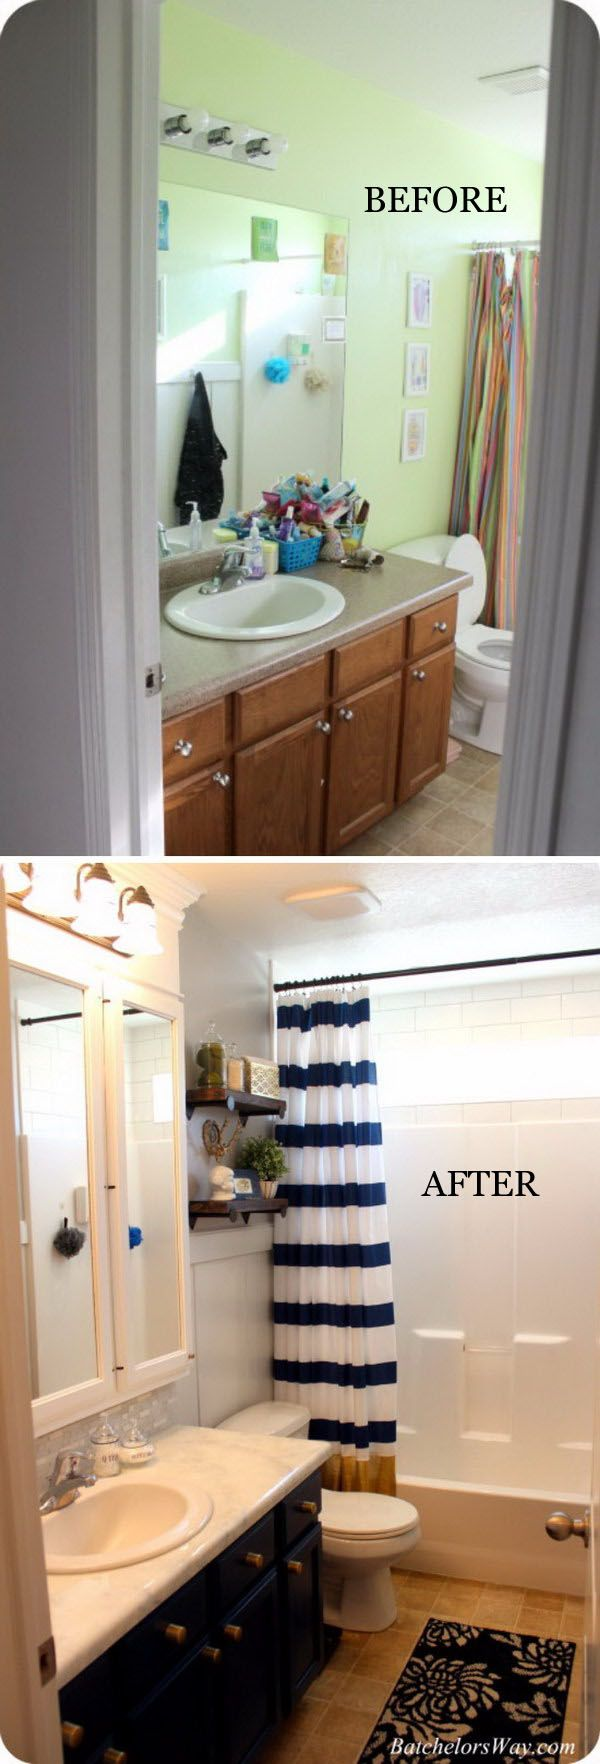 Awesome Websites Before and After Awesome Bathroom Makeovers